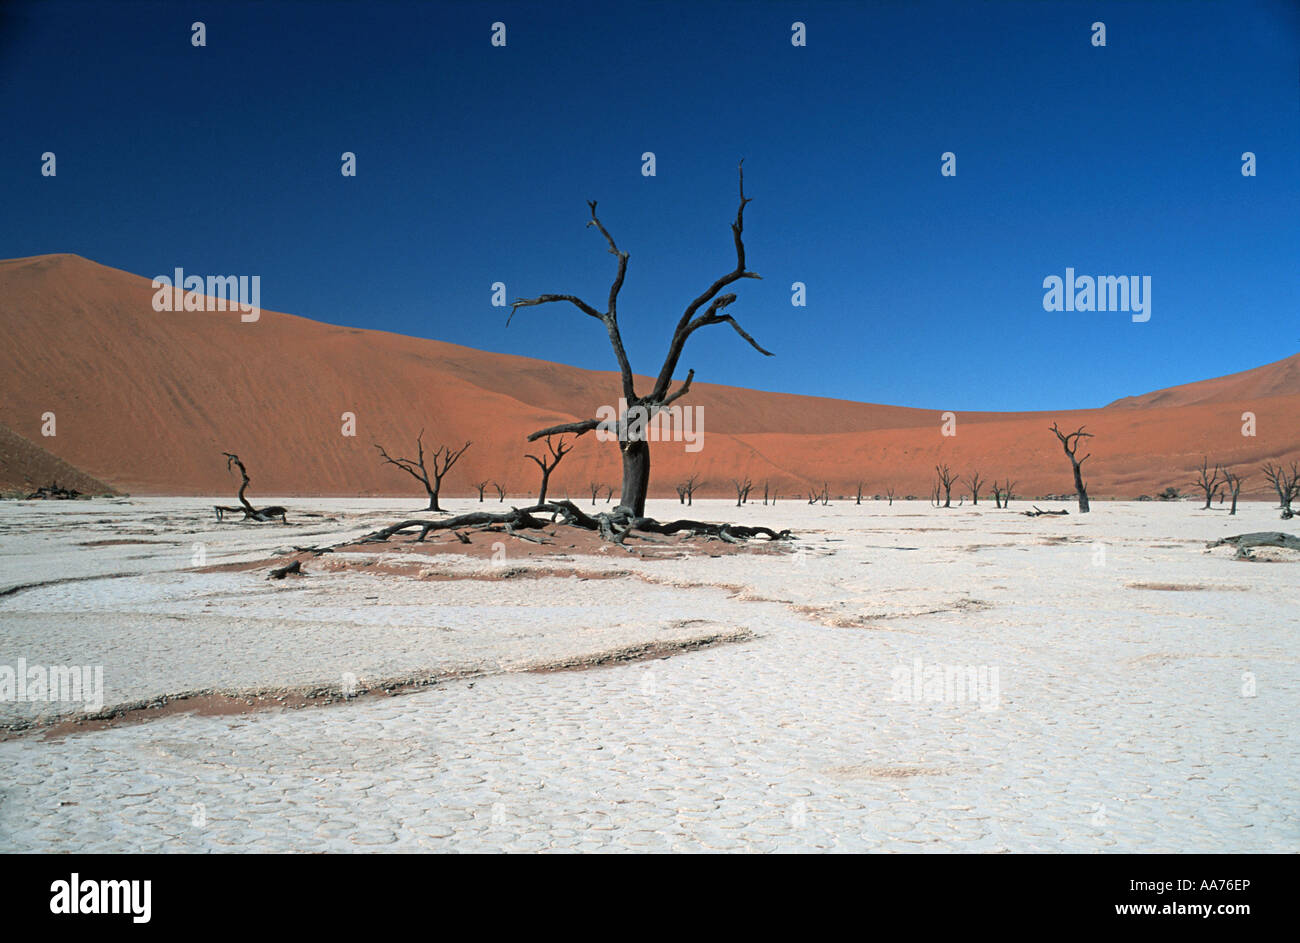 Sand dunes and dessicated trees on a salt pan Dead Vlei Namib Naukluft National Park Namibia - Stock Image